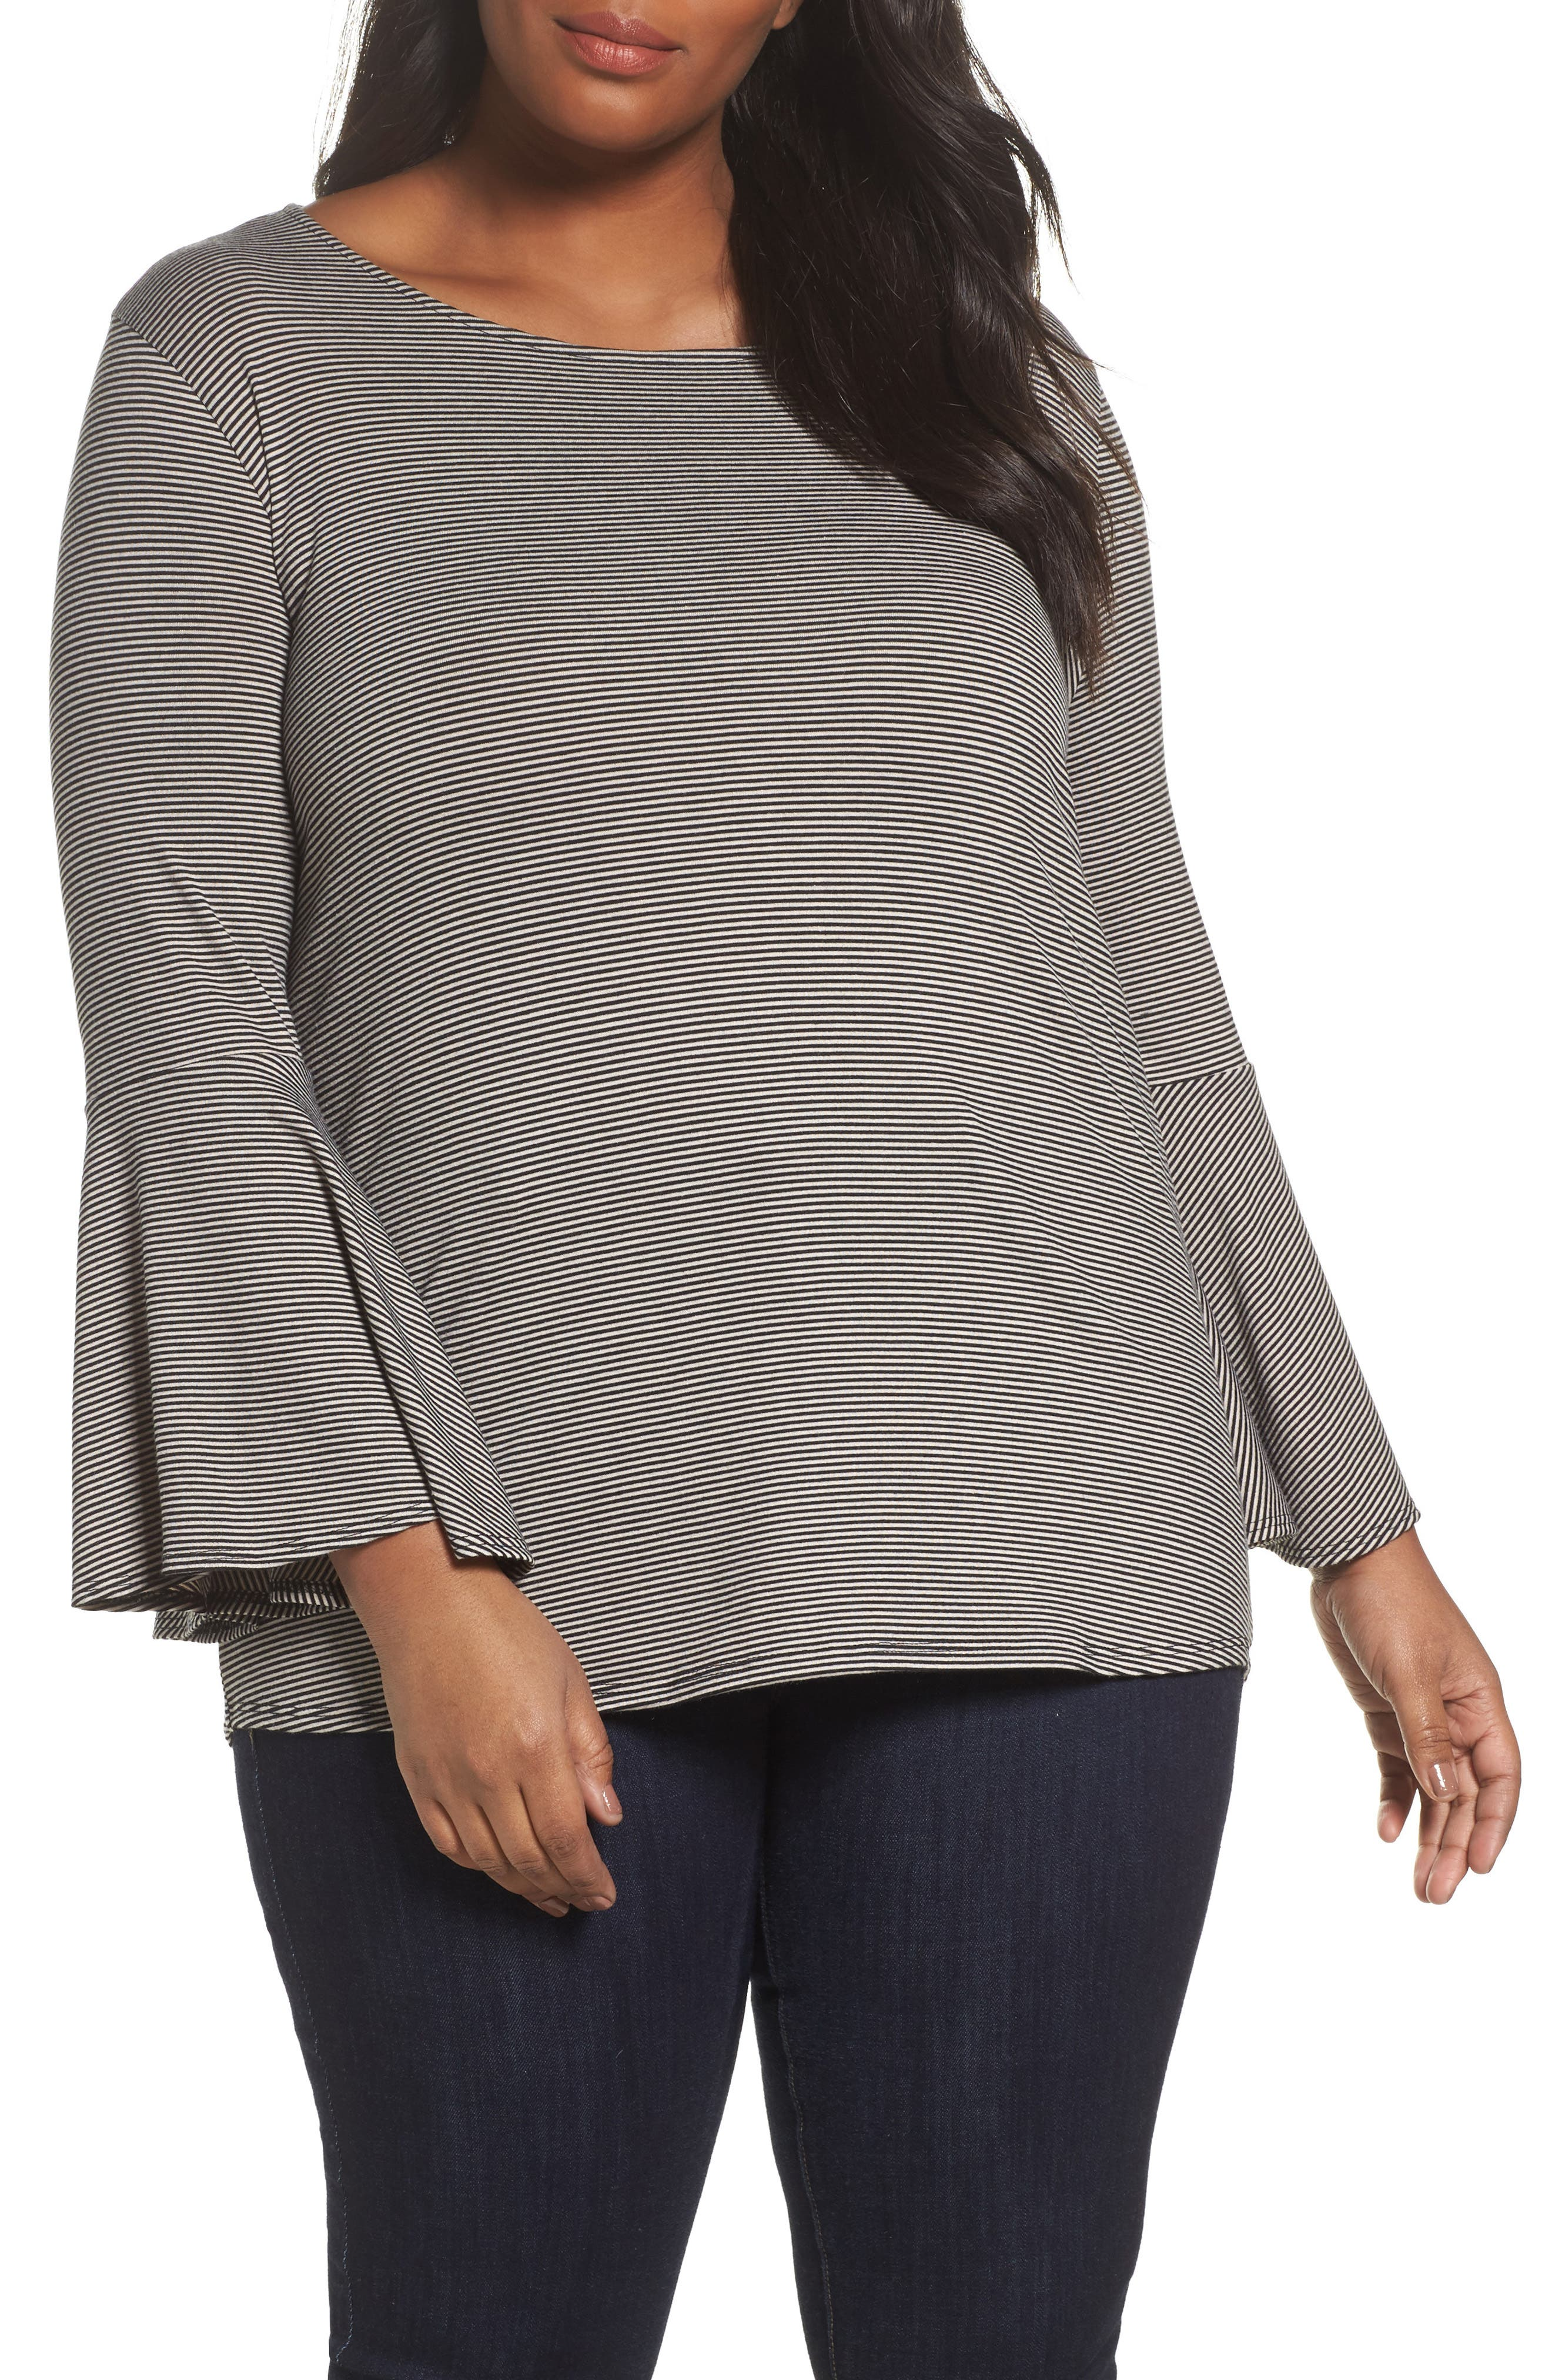 Bell Sleeve Top,                             Main thumbnail 1, color,                             Charcoal Heather- Black Stripe